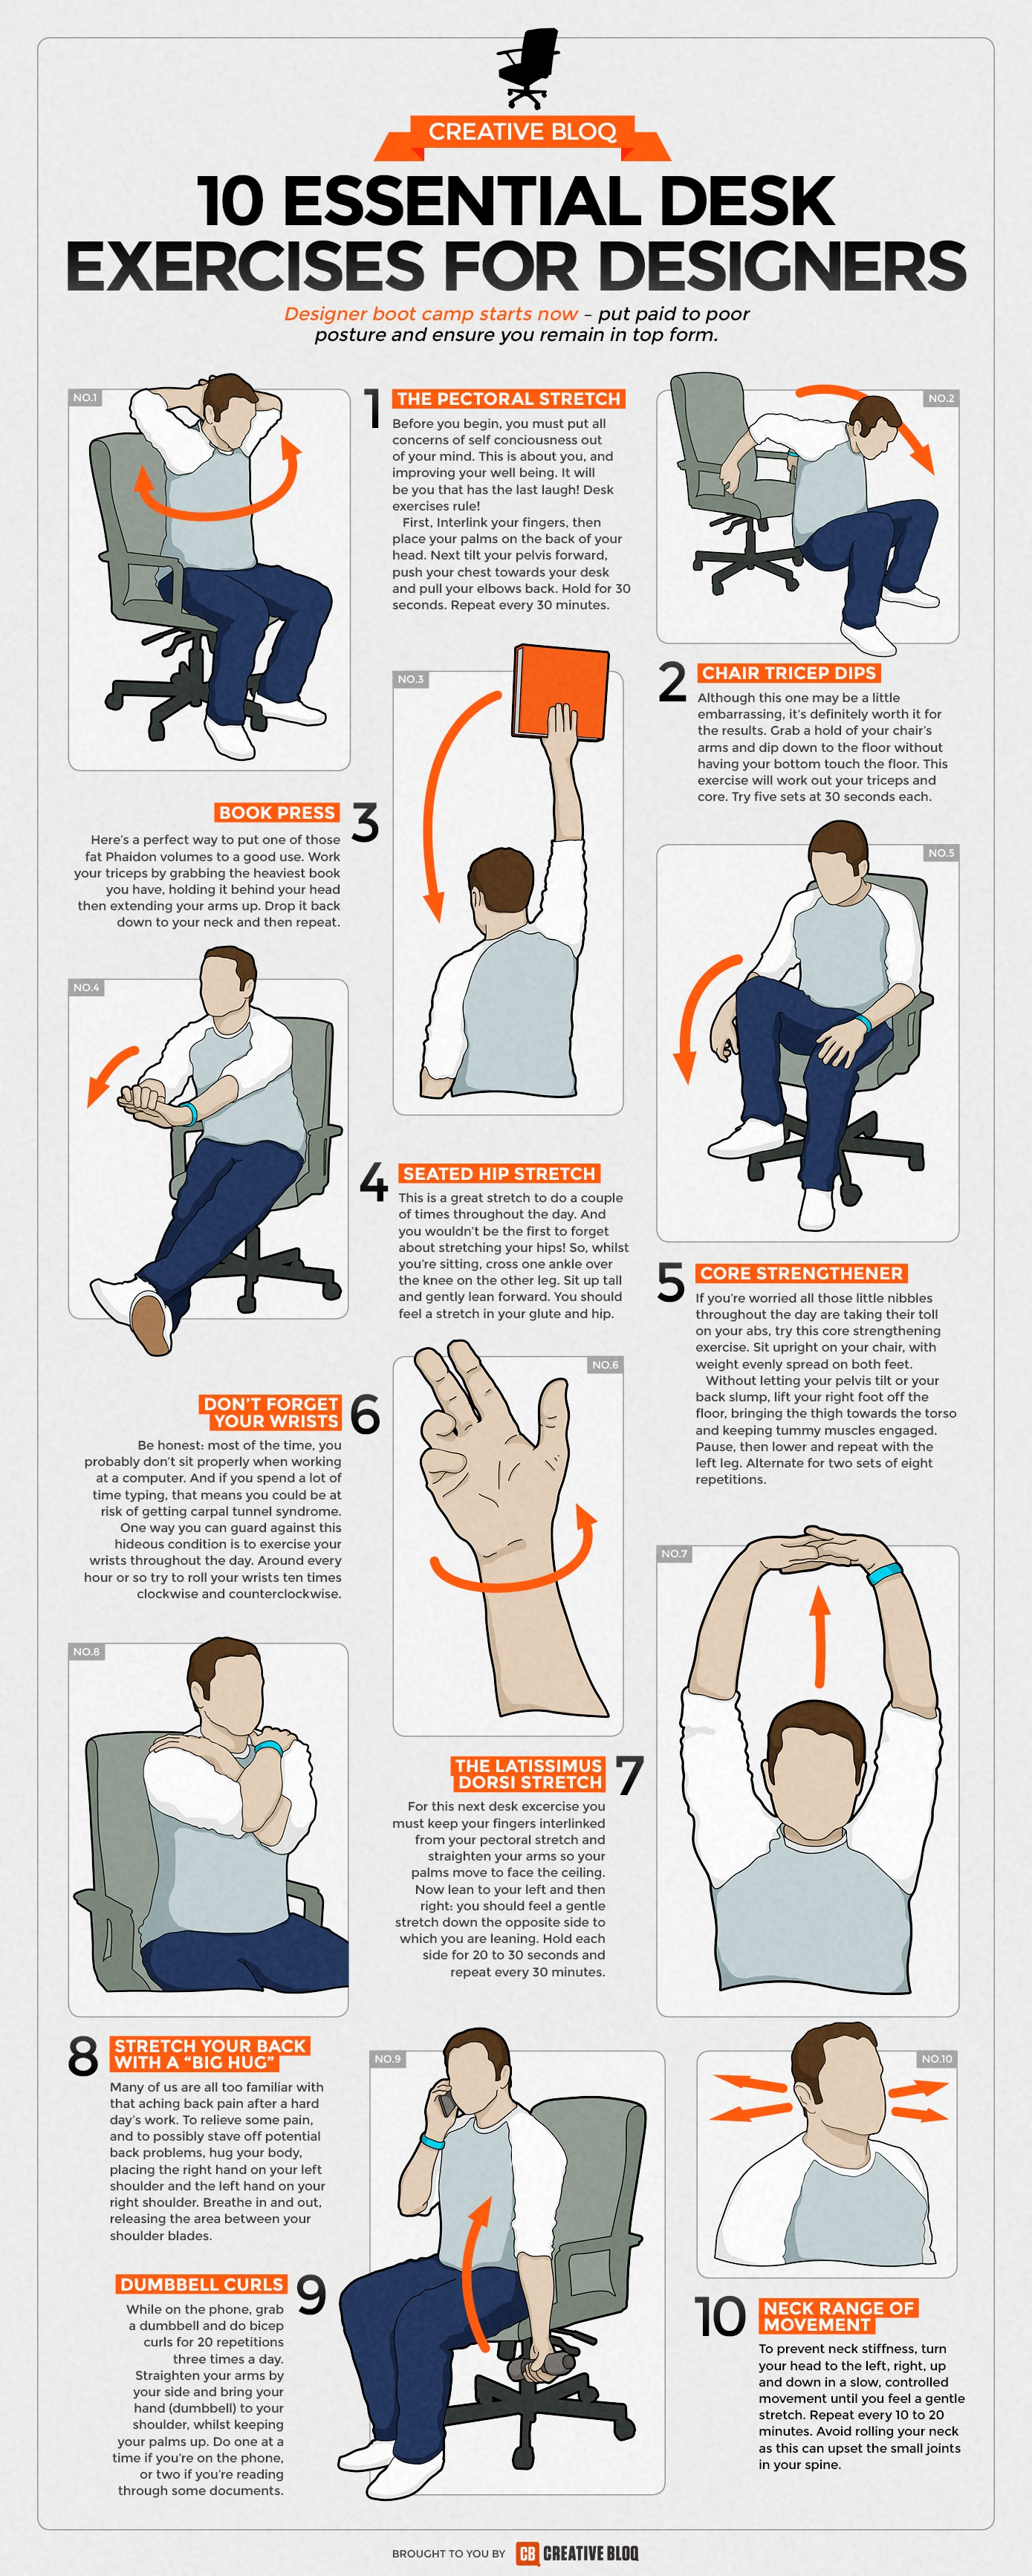 ideas office workplace design at work sitting simple while most your fitness exercises exercise desk chair perfect